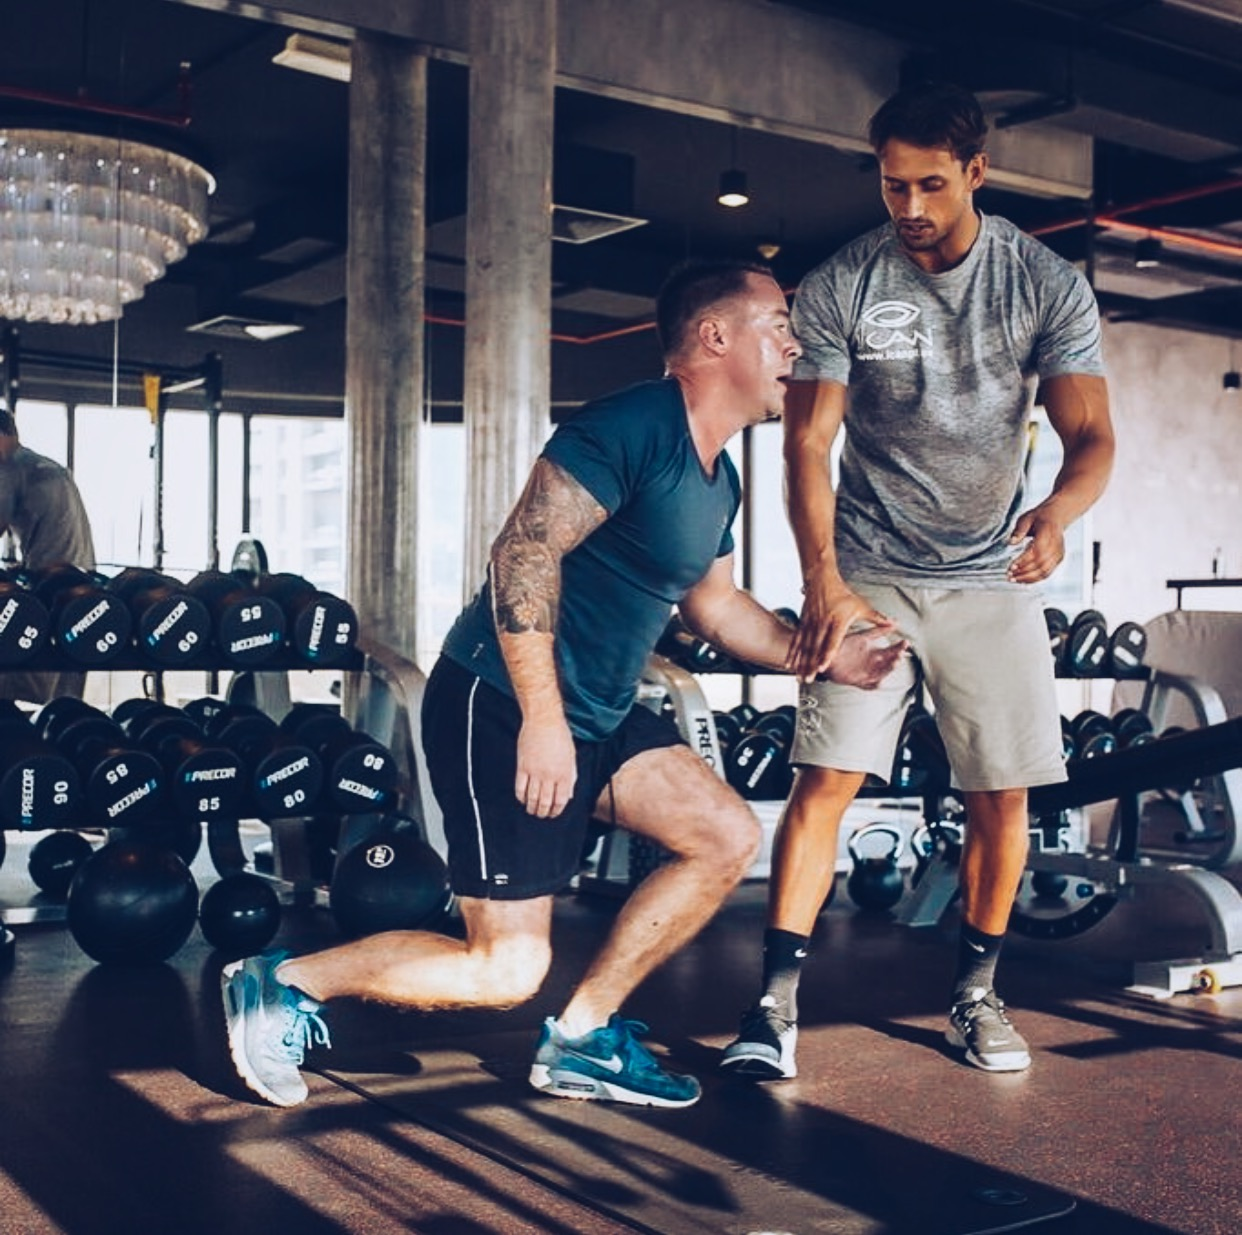 Private Personal Training - Our Trainers are here to Inspire, Motivate and Educate.